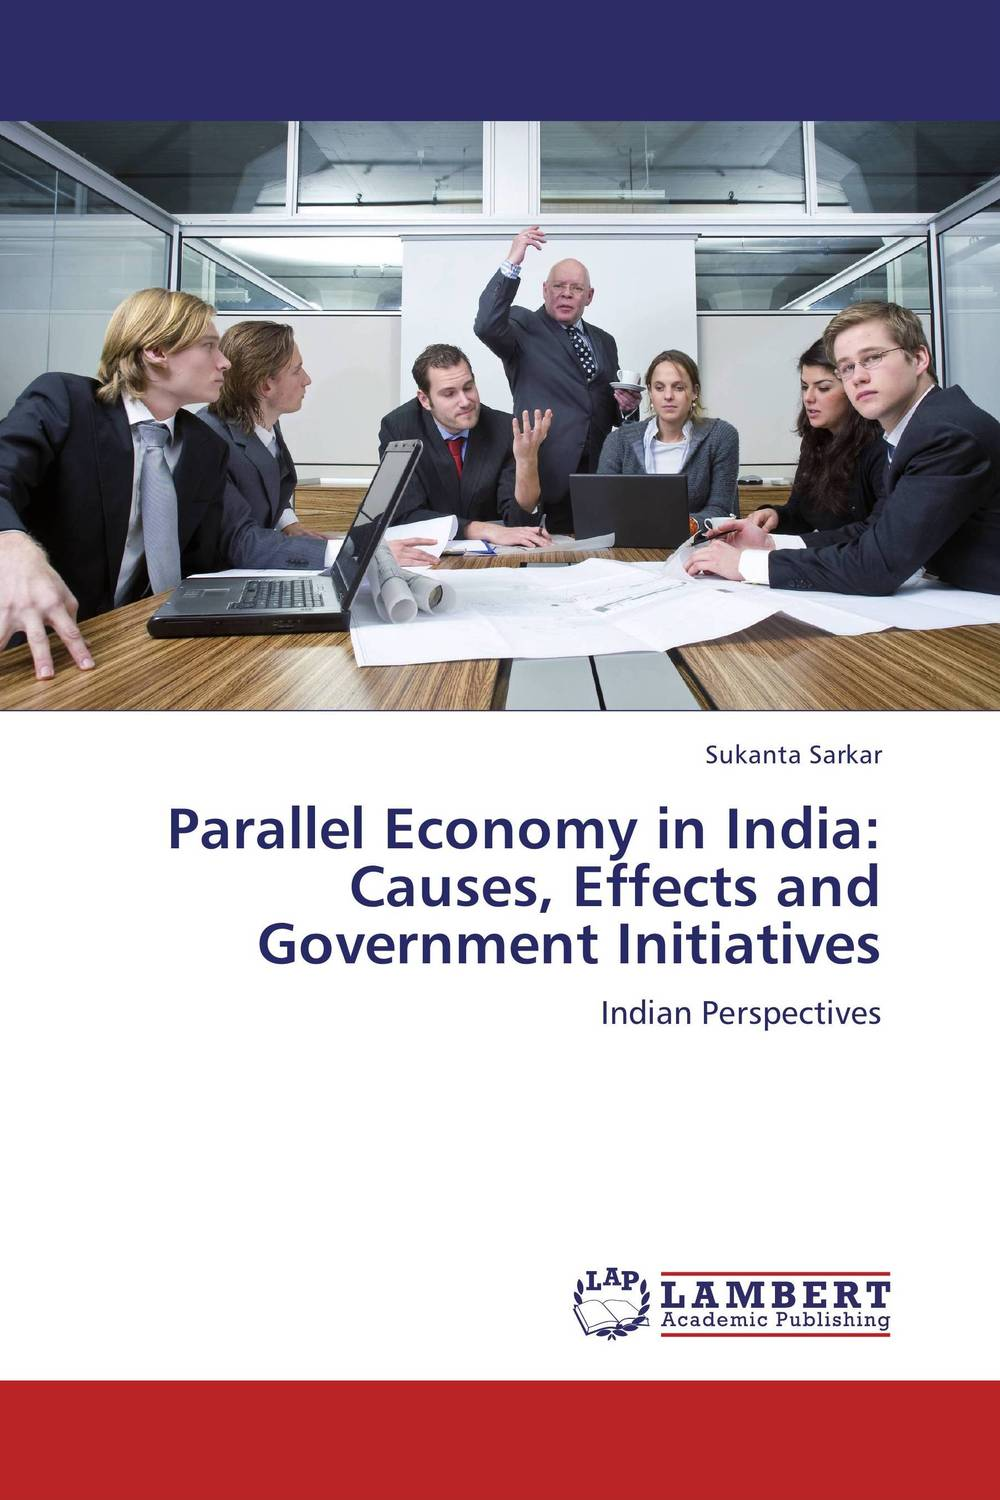 Parallel Economy in India: Causes, Effects and Government Initiatives environmental protection in india role of supreme court